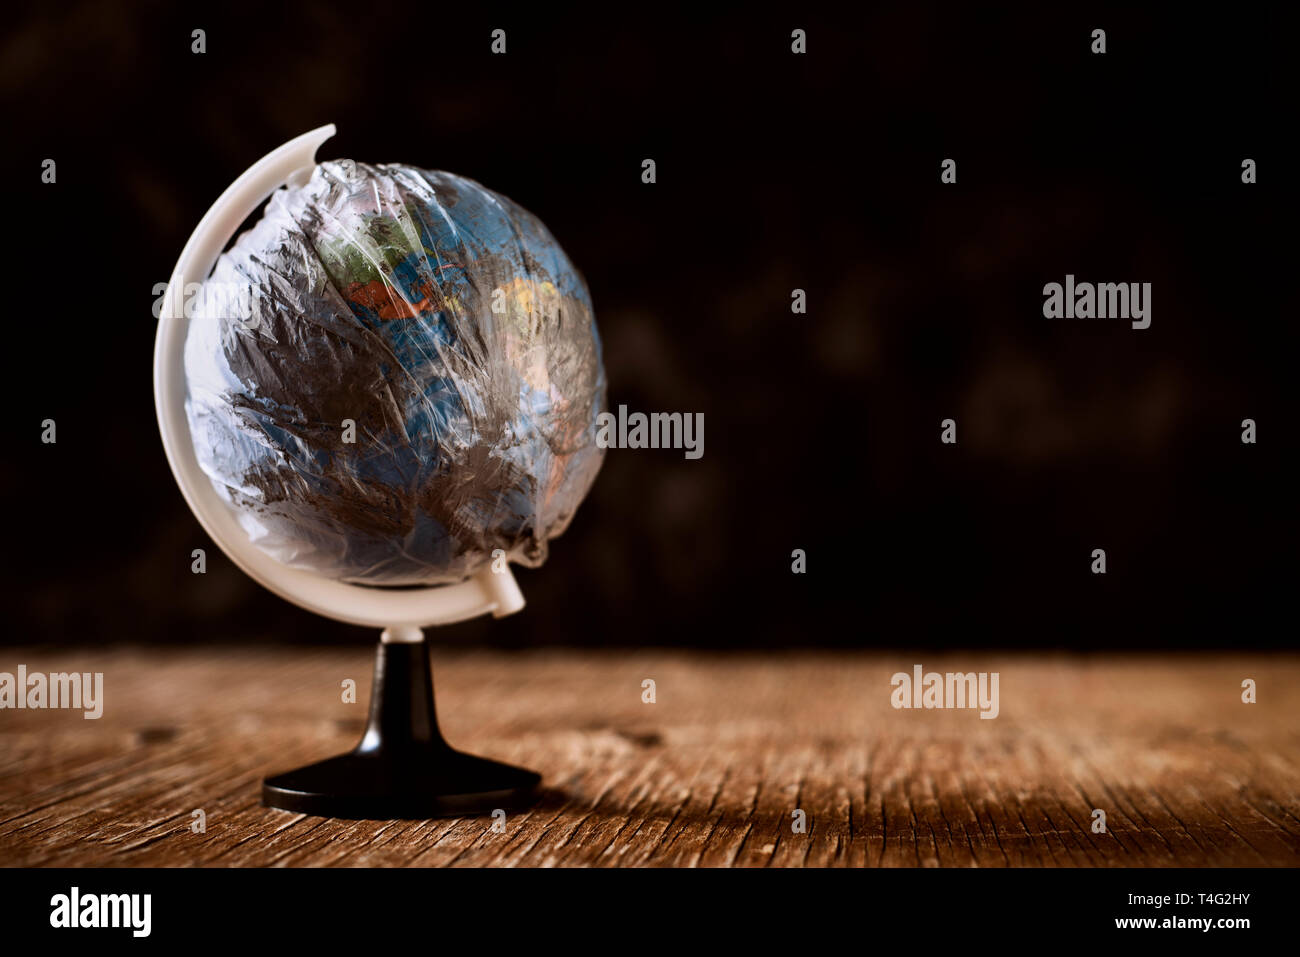 a world globe wrapped in a dirty plastic, on a rustic wooden surface, against a dark background, depicting the air pollution, the excess of plastic wa - Stock Image